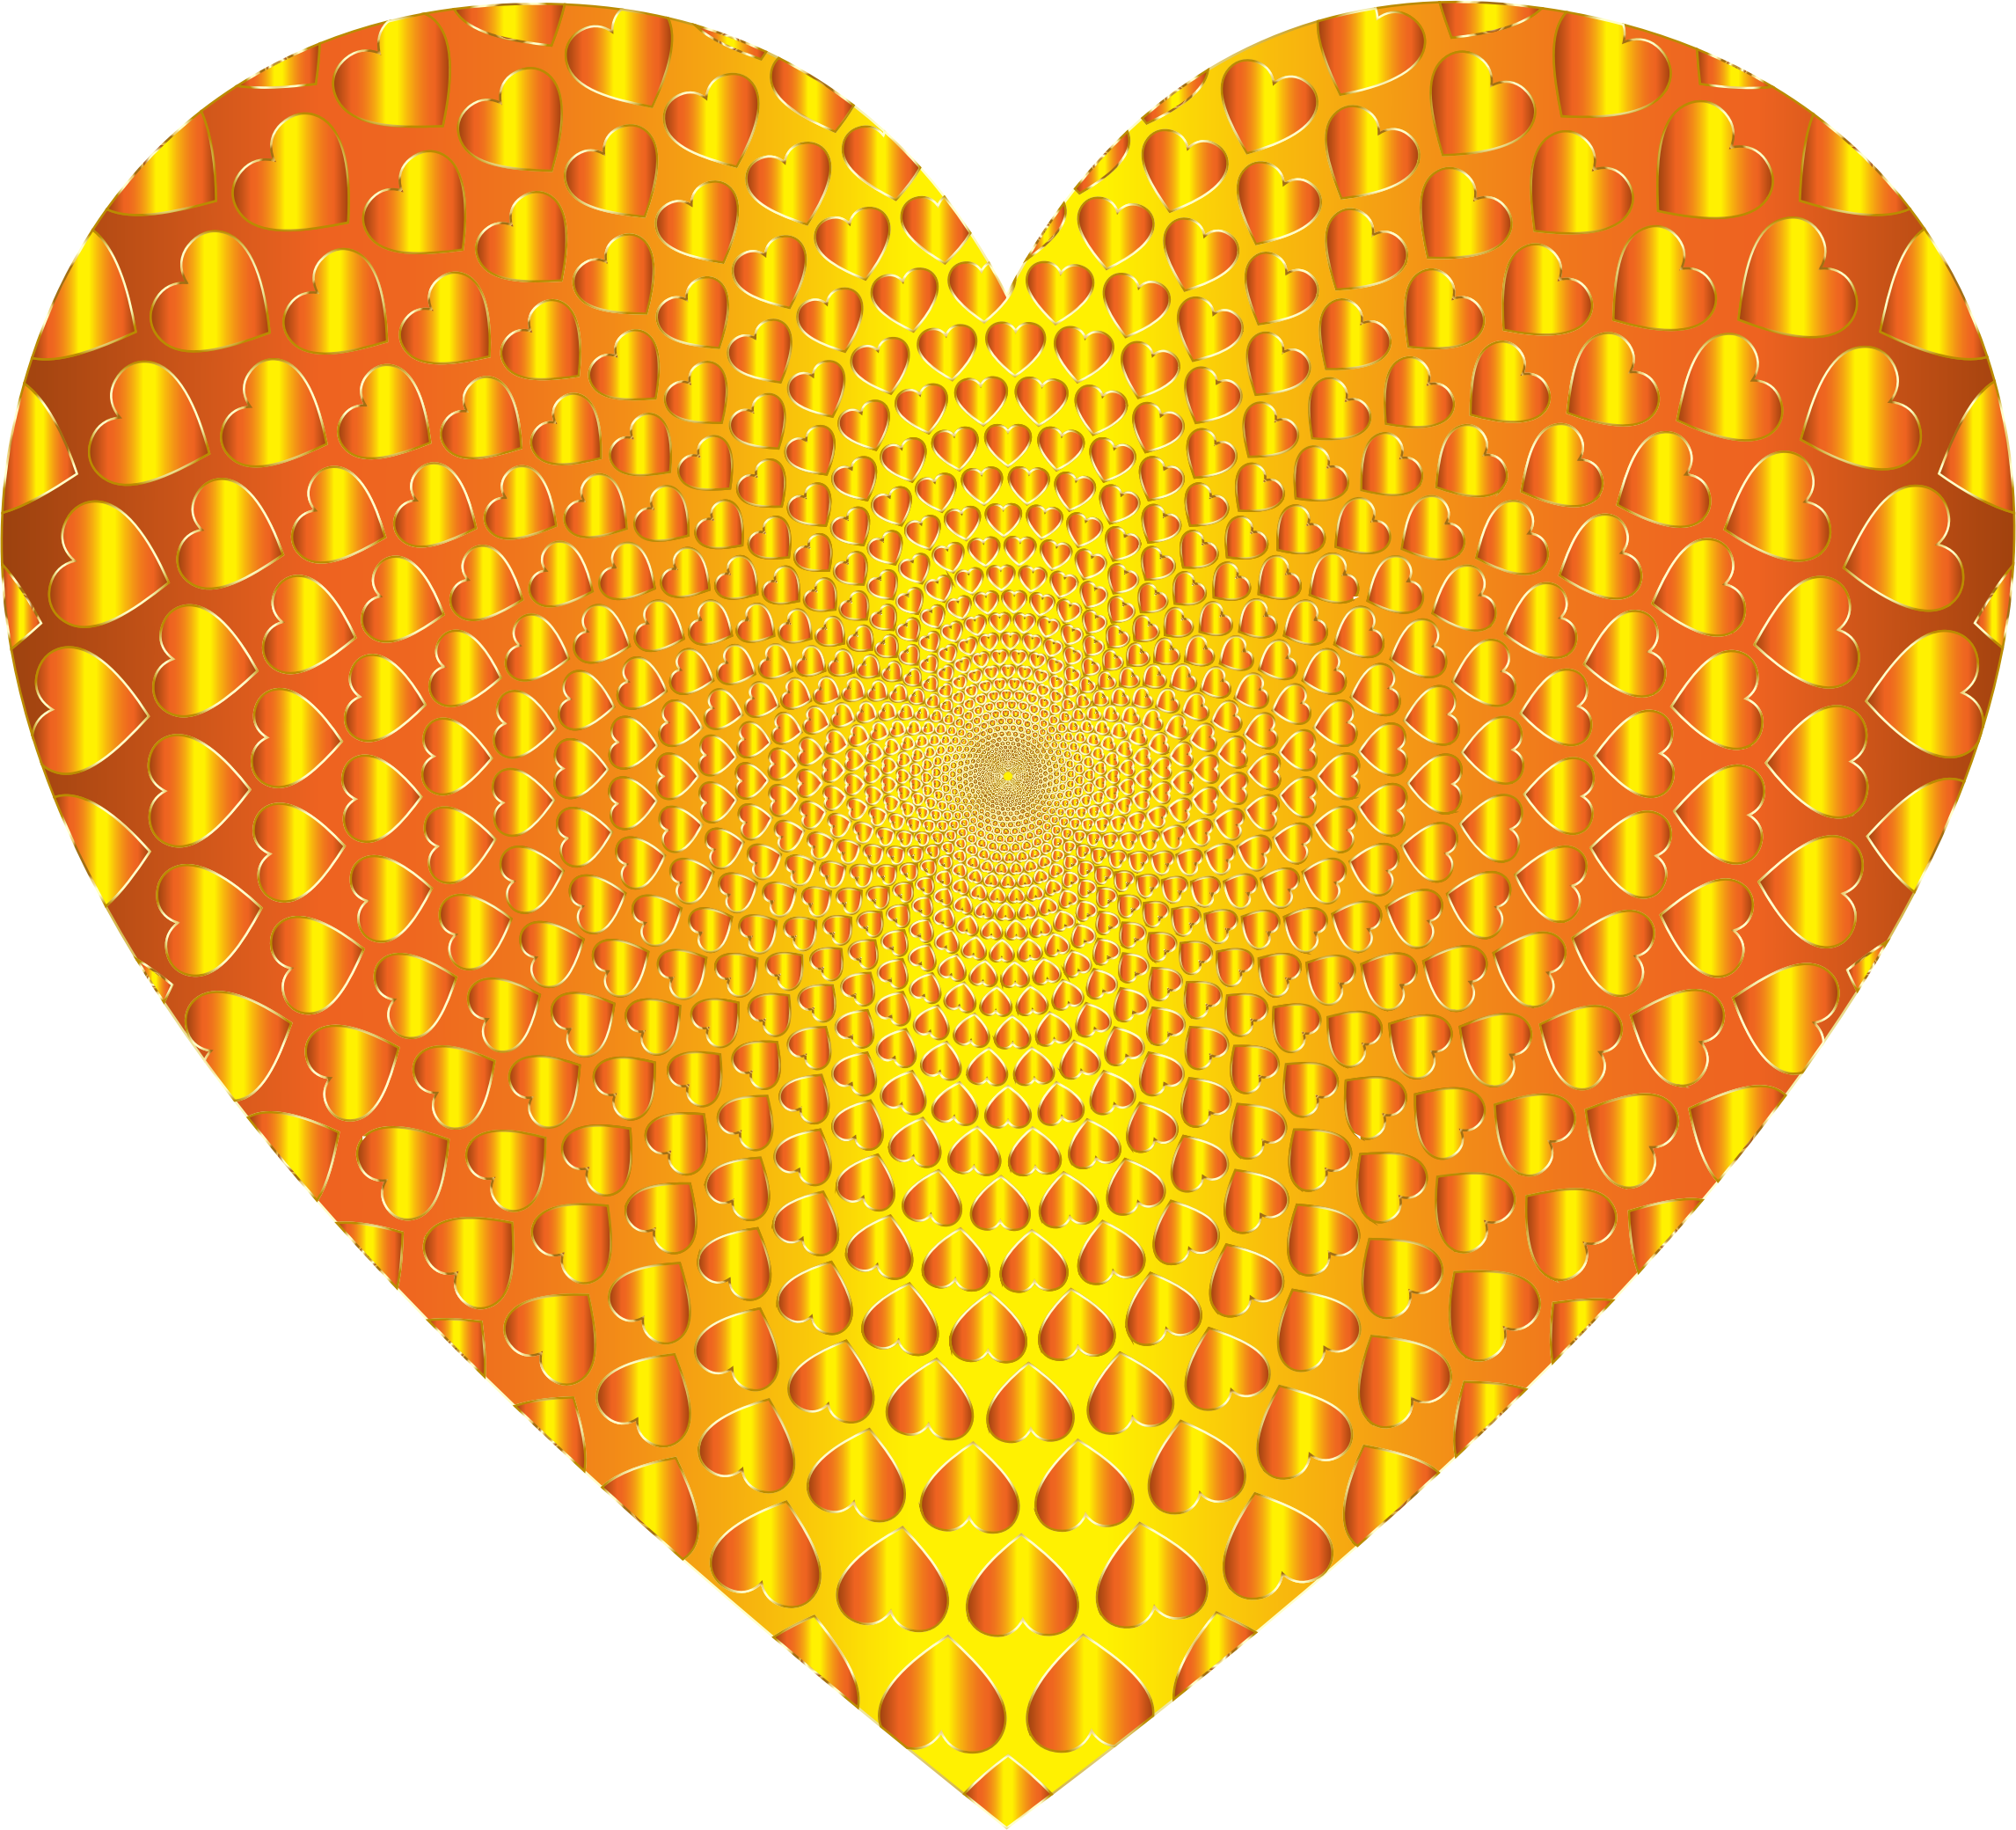 Prismatic Hearts Vortex Heart 12 by GDJ